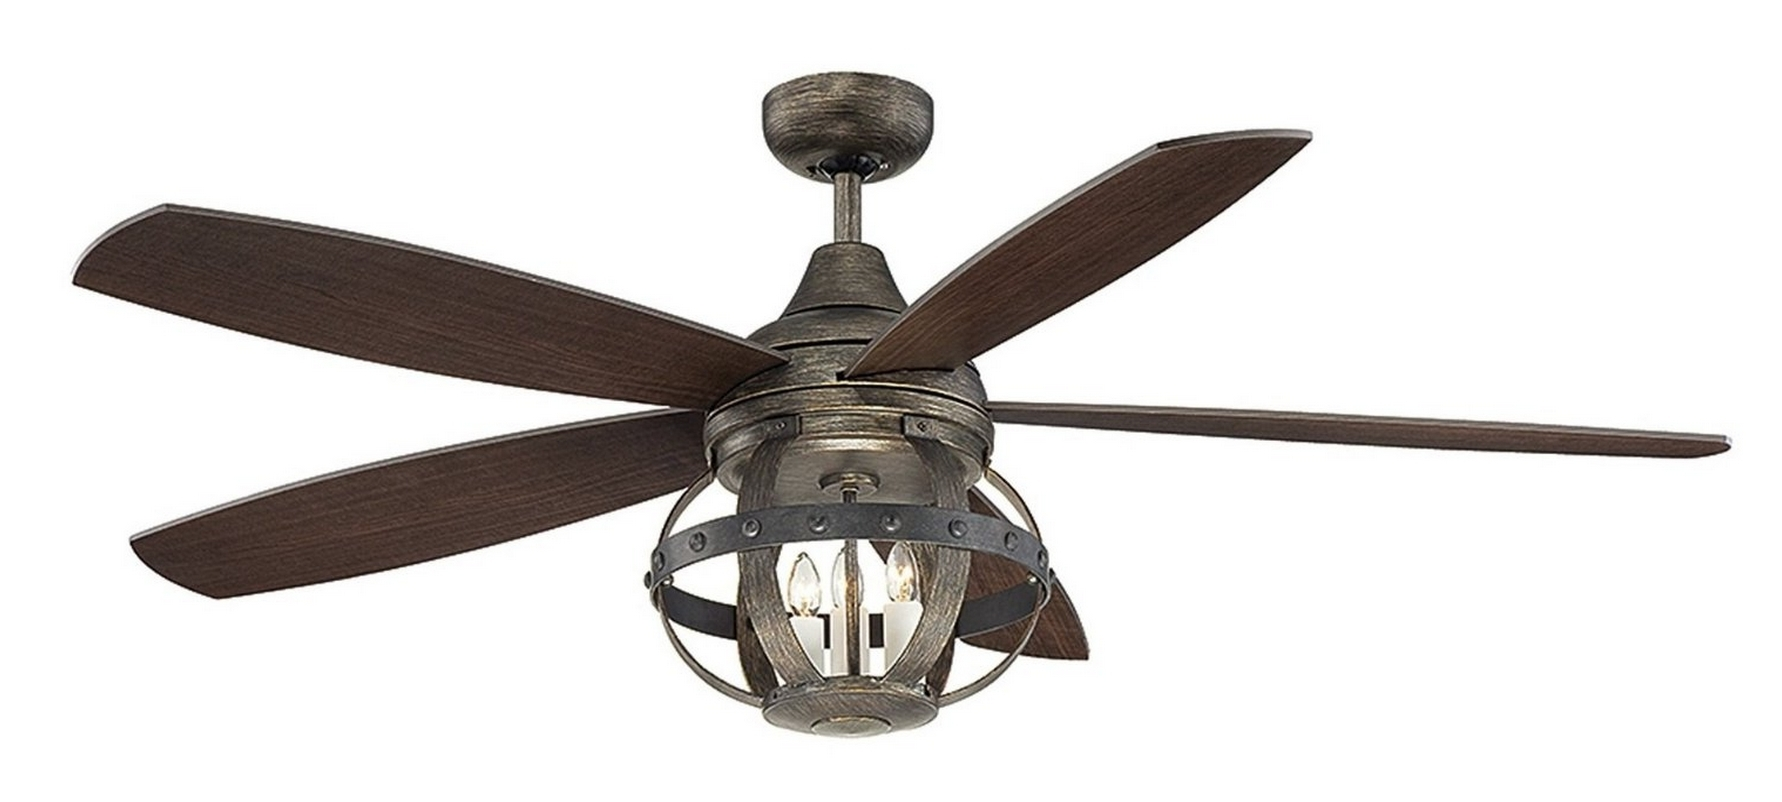 Industrial Outdoor Ceiling Fans Throughout 2019 Industrial Outdoor Ceiling Fan With Light Industrial Outdoor Ceiling (View 6 of 20)